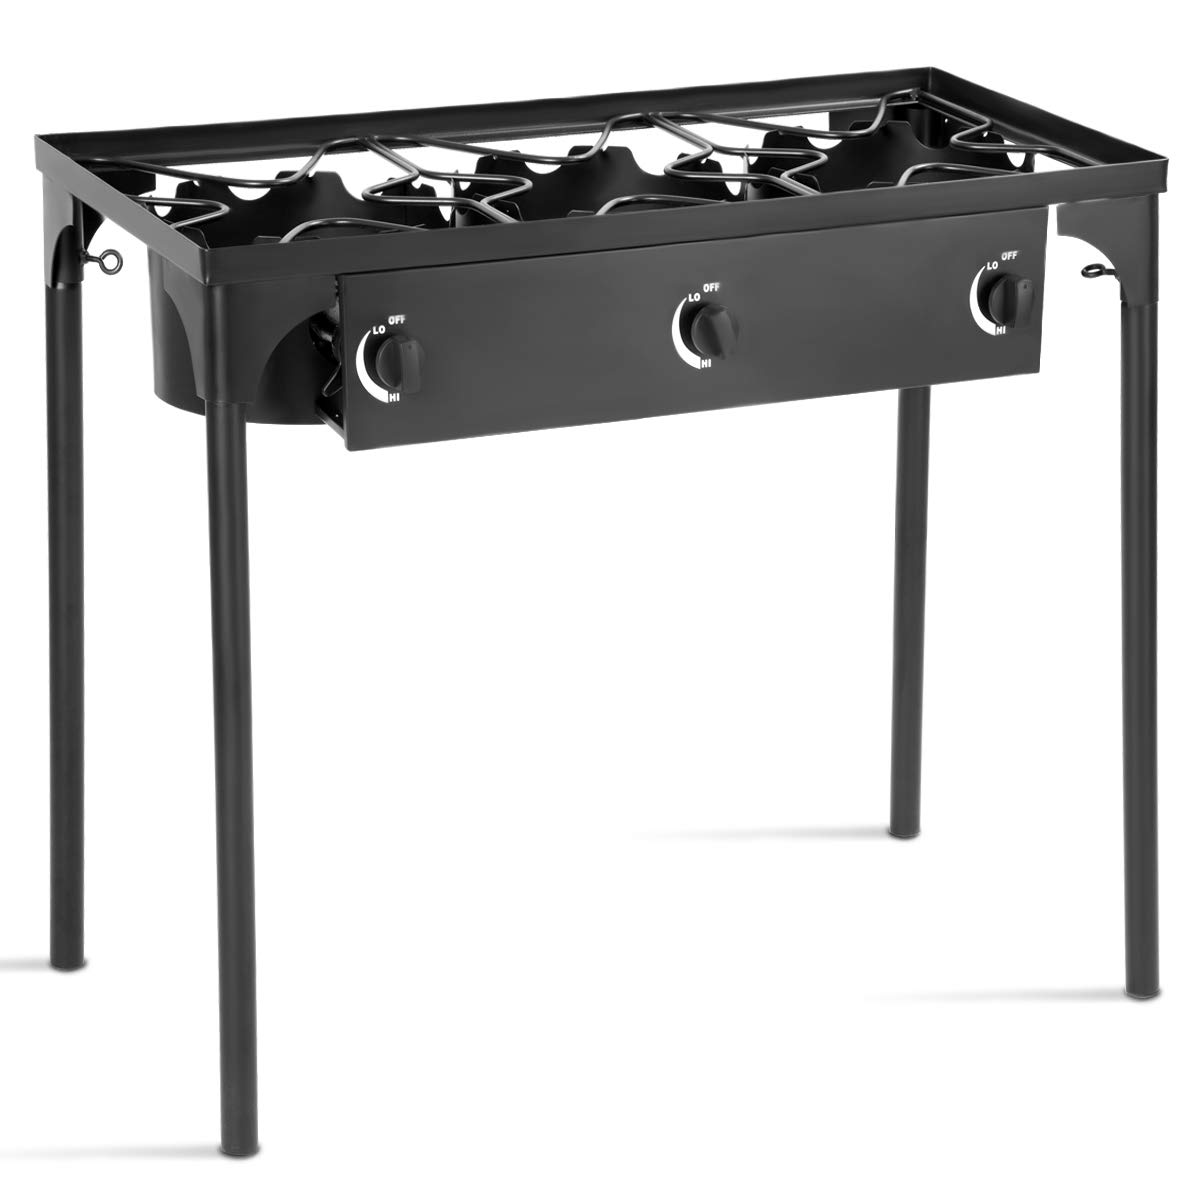 Goplus Outdoor Camp Stove High Pressure Propane Gas Cooker Portable Cast Iron Patio Cooking Burner w/Detachable Legs Great for Camping, Patio, or RV (3-Burner 225,000-BTU)